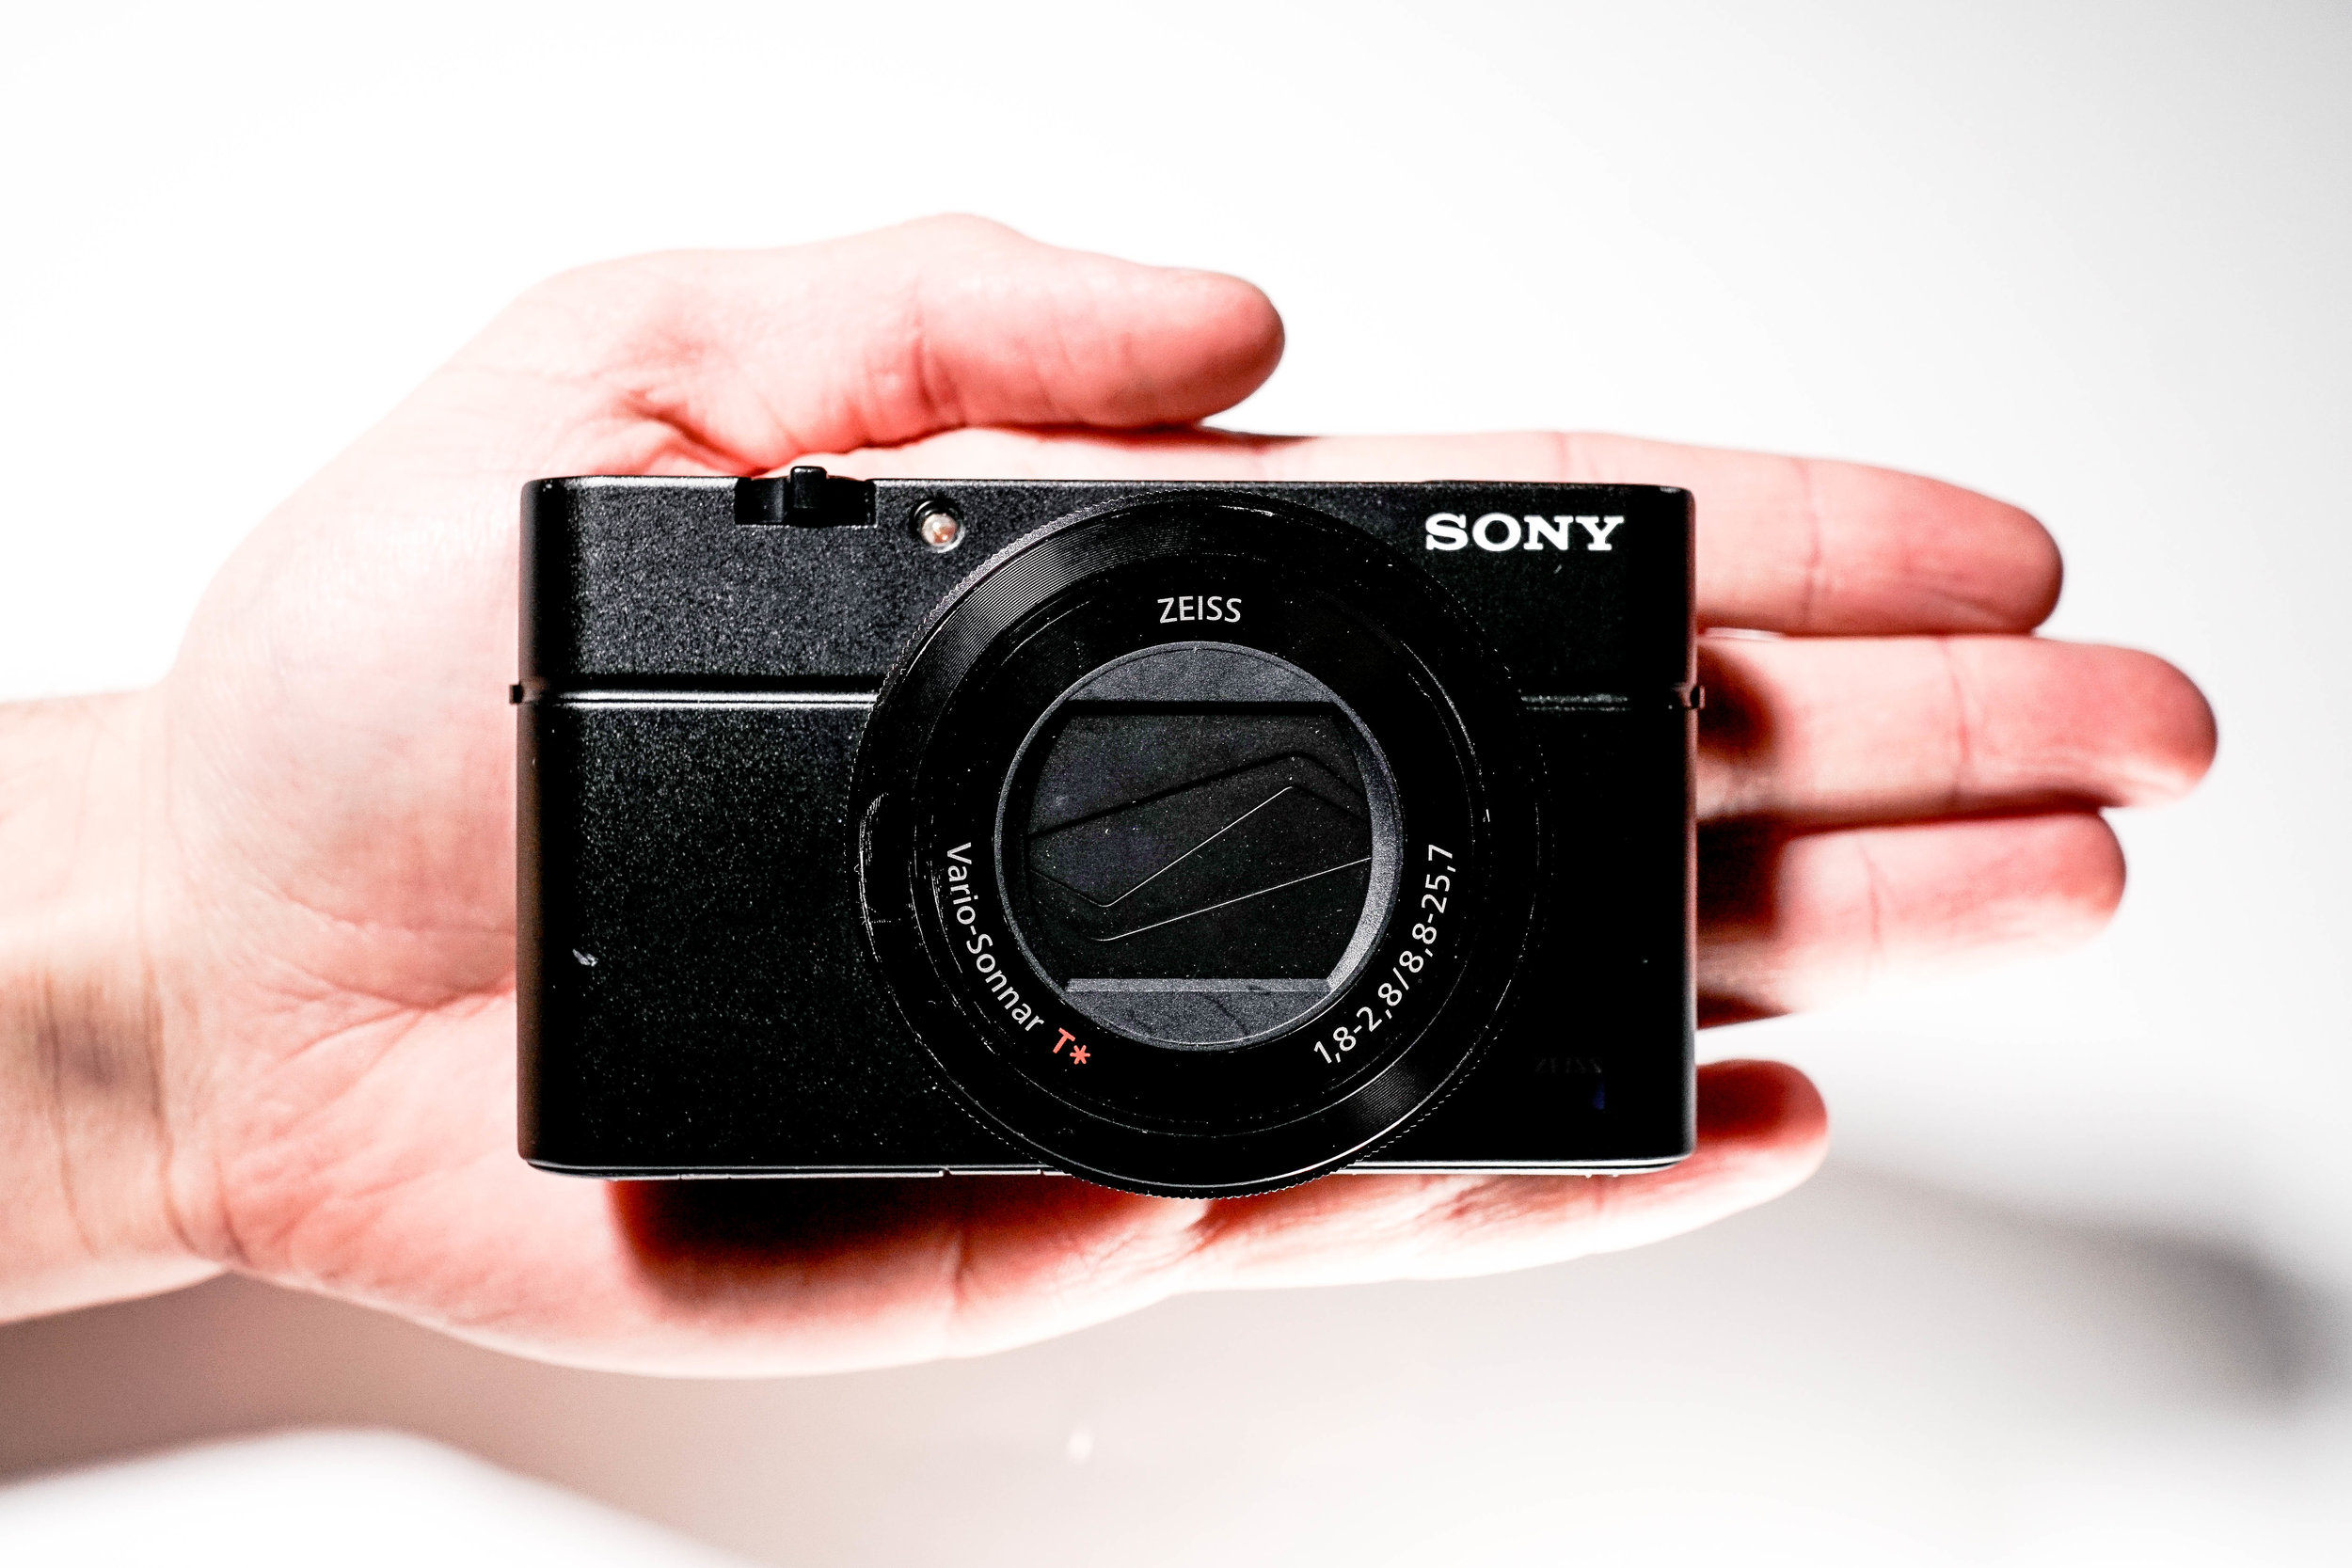 Sony RX100iii in Hand